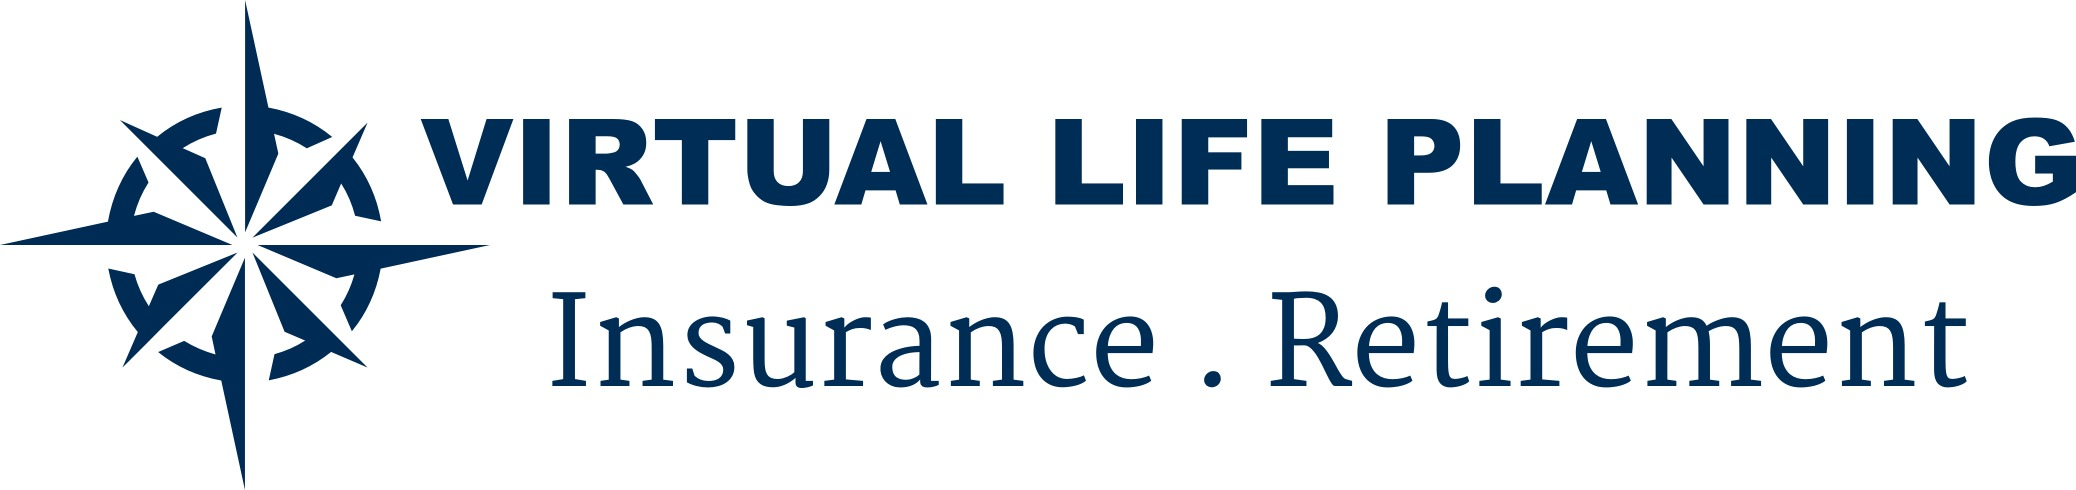 Quotes On Term Life Insurance Virtual Life Planning  Term Life Quotes